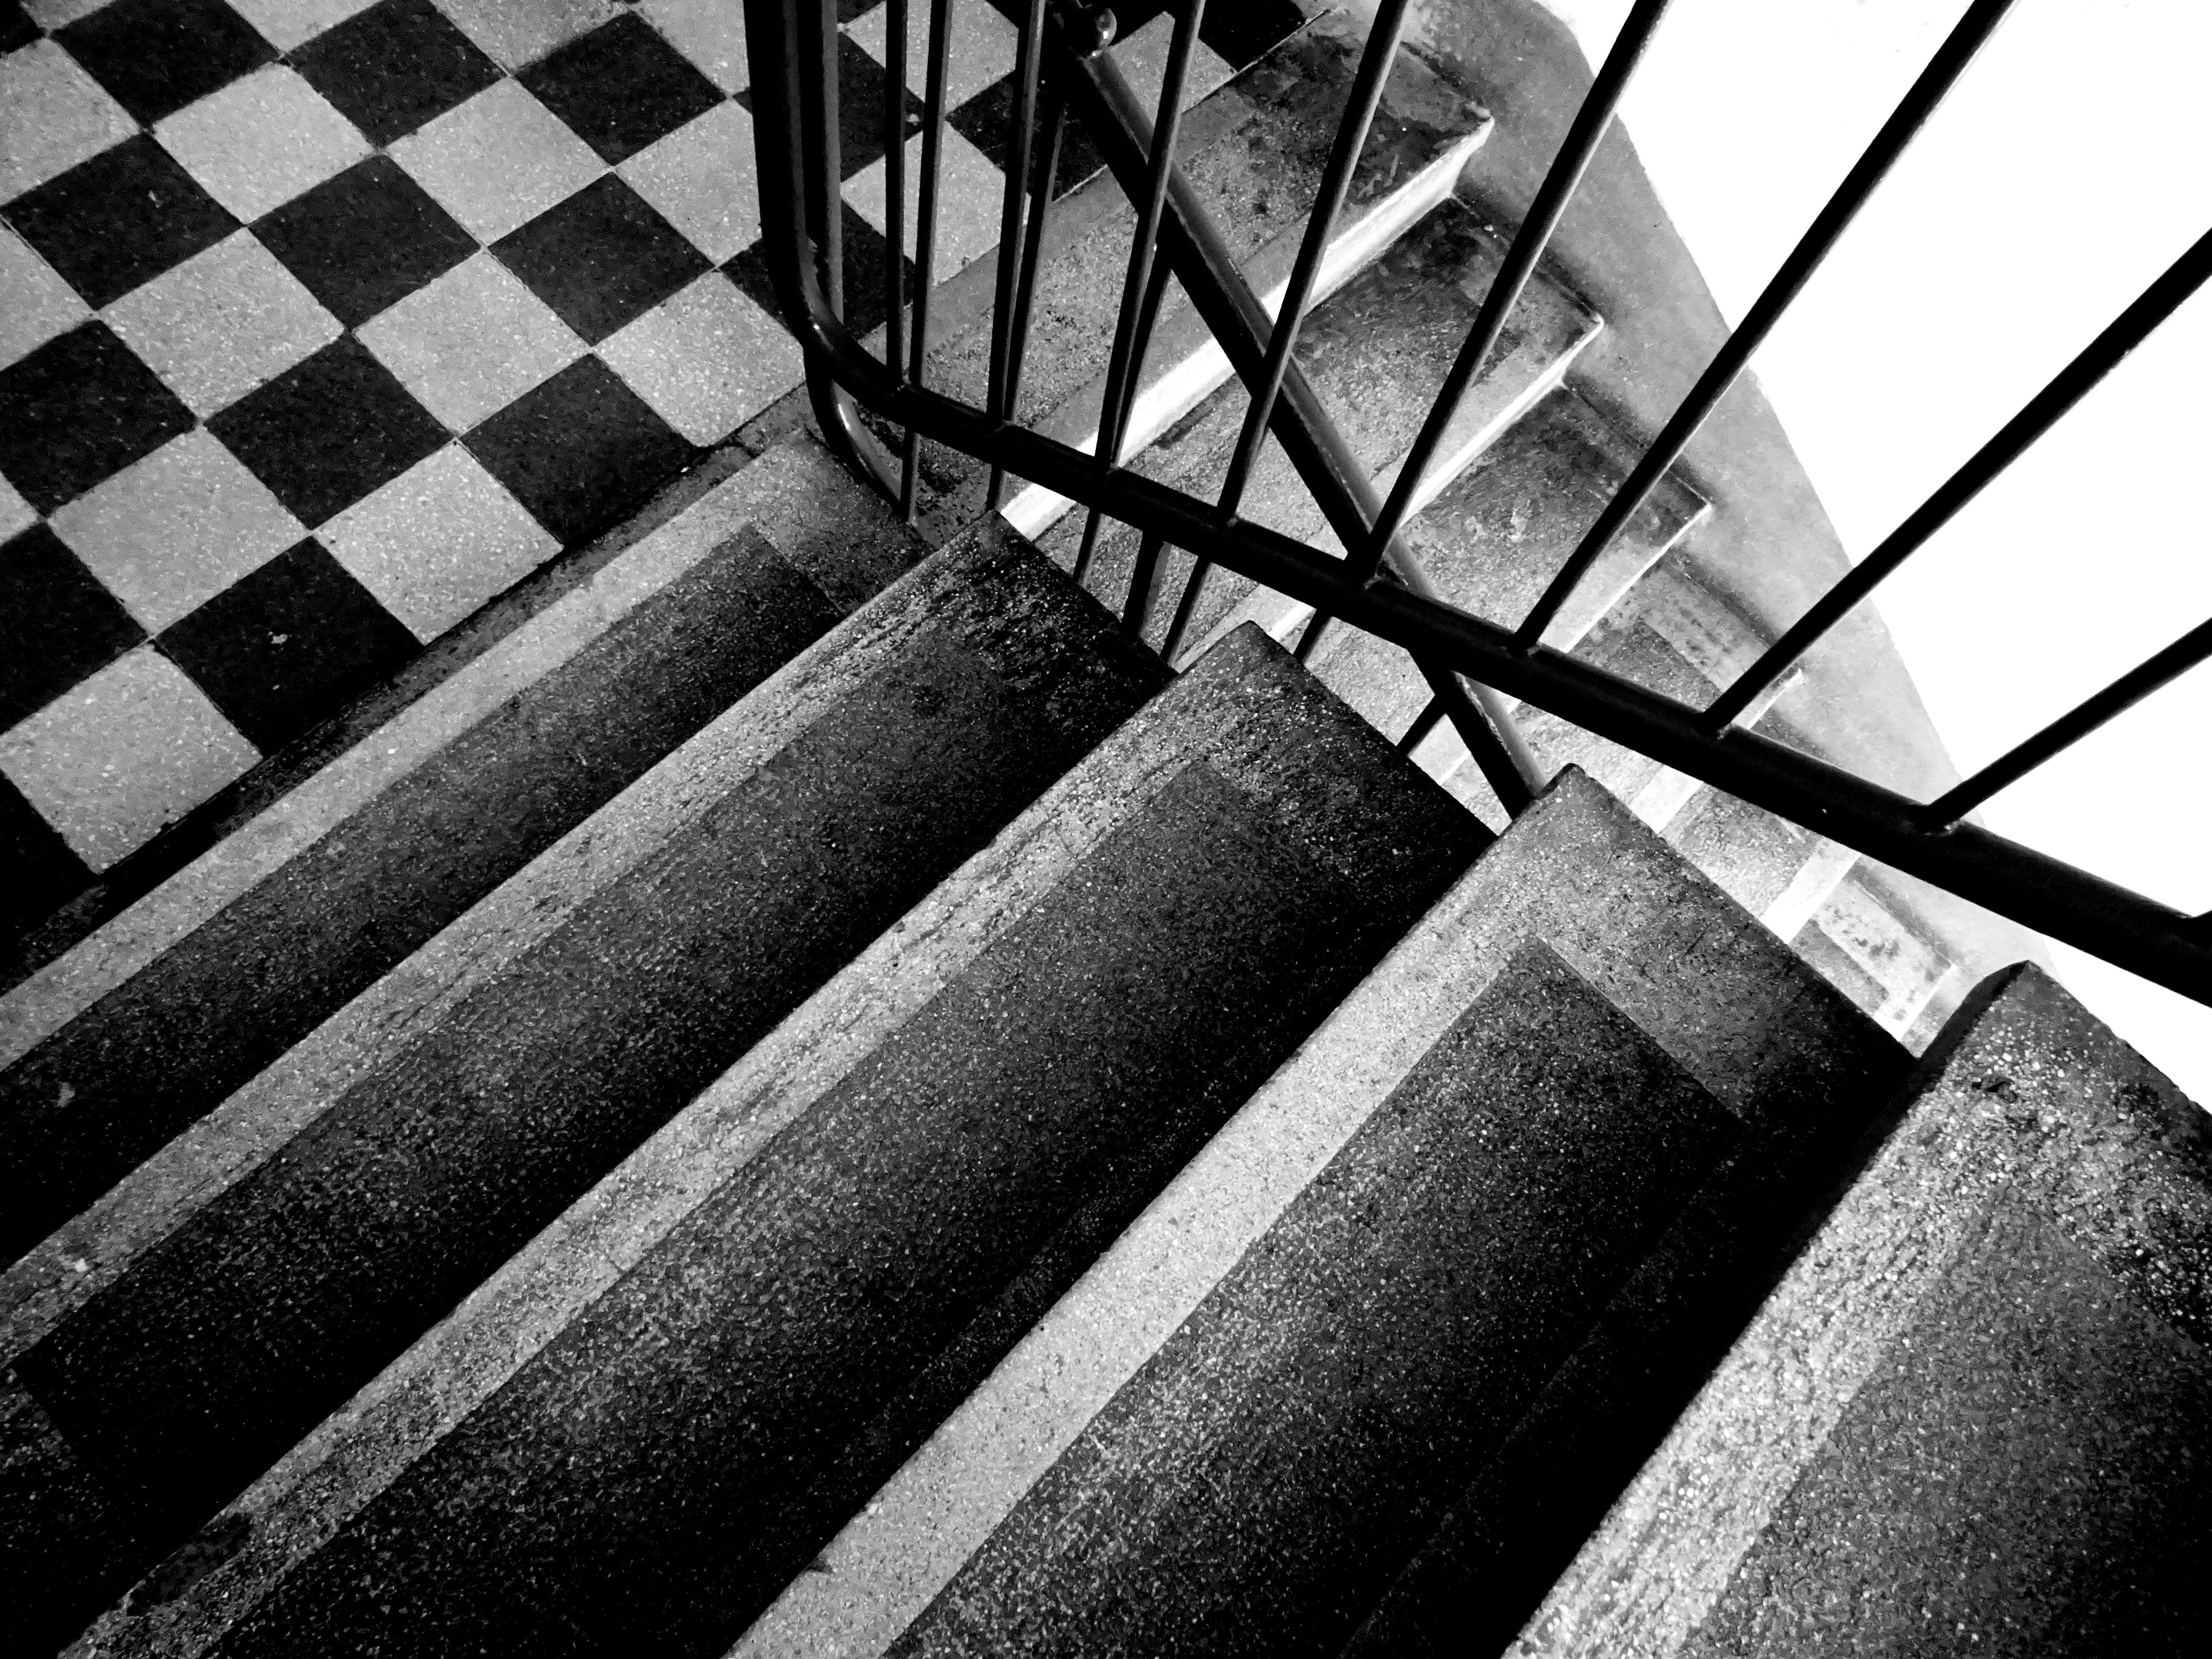 Grey Scale Photo of Stairs